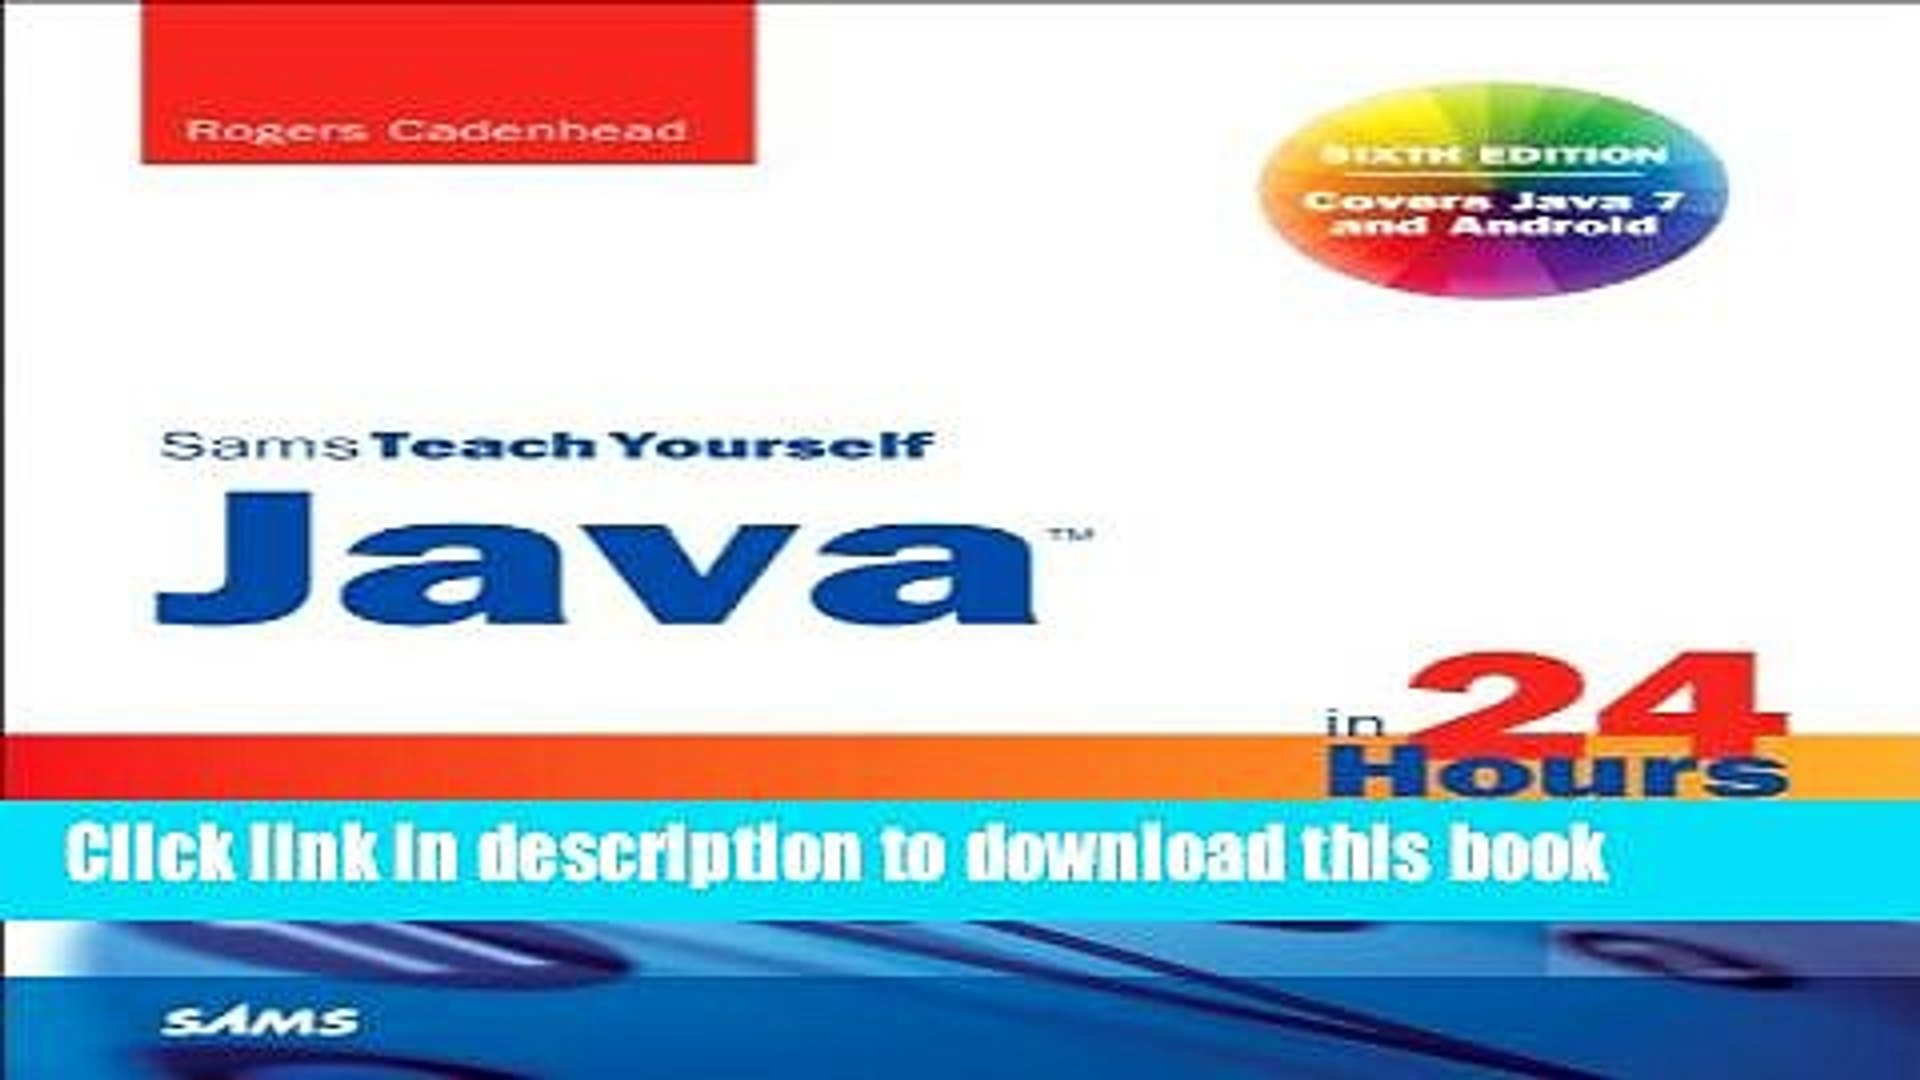 Download Sams Teach Yourself Java in 24 Hours (Covering Java 7 and Android) (6th Edition)  PDF Free